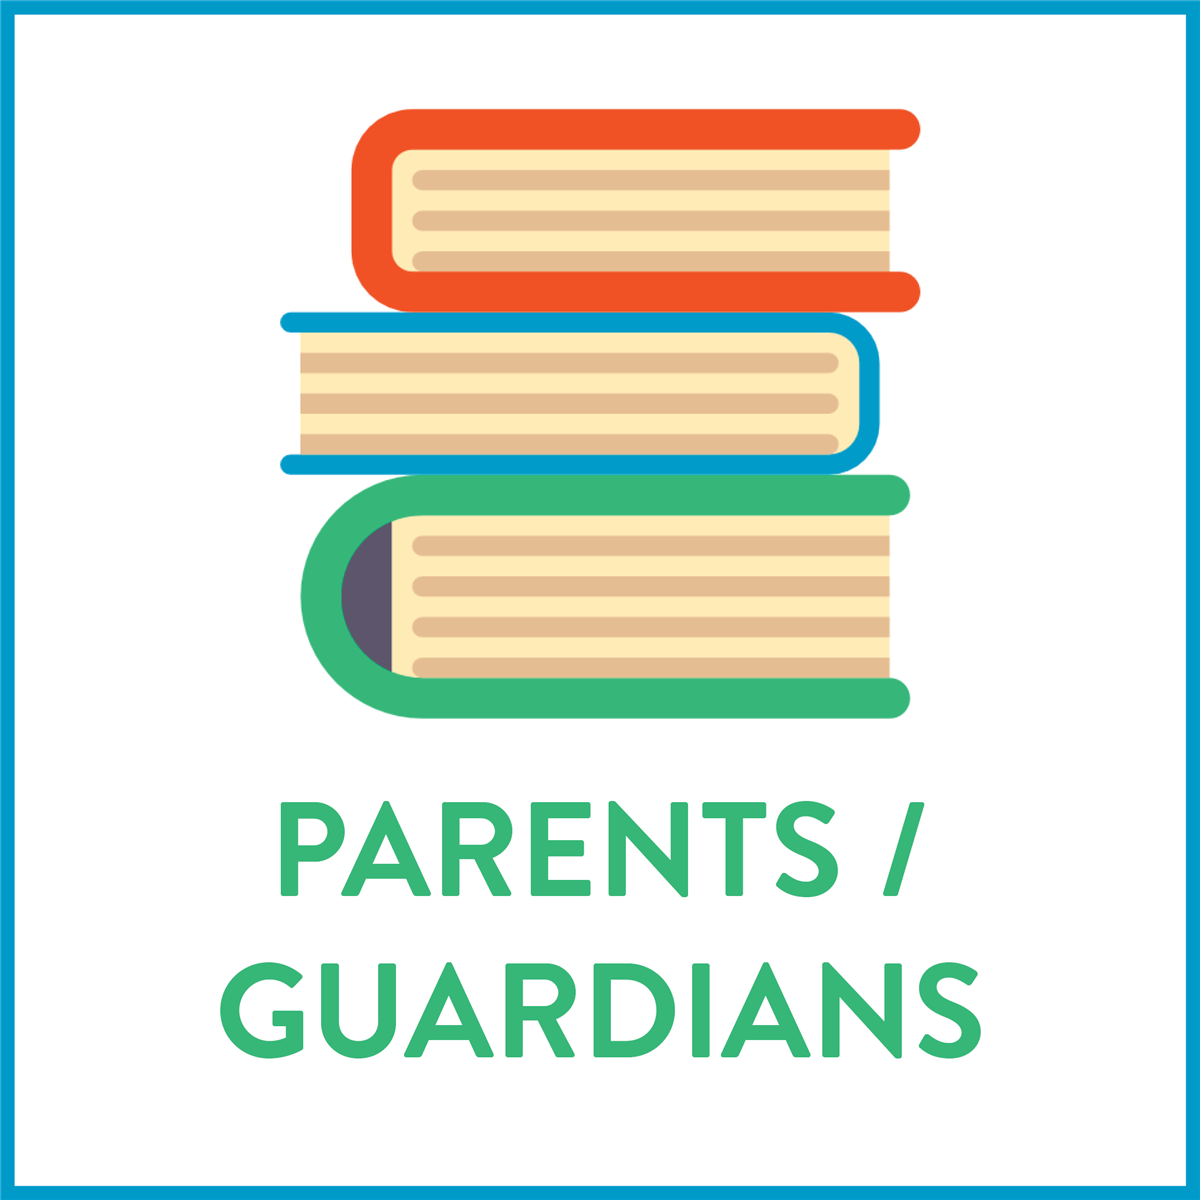 PARENTS GUARDIANS